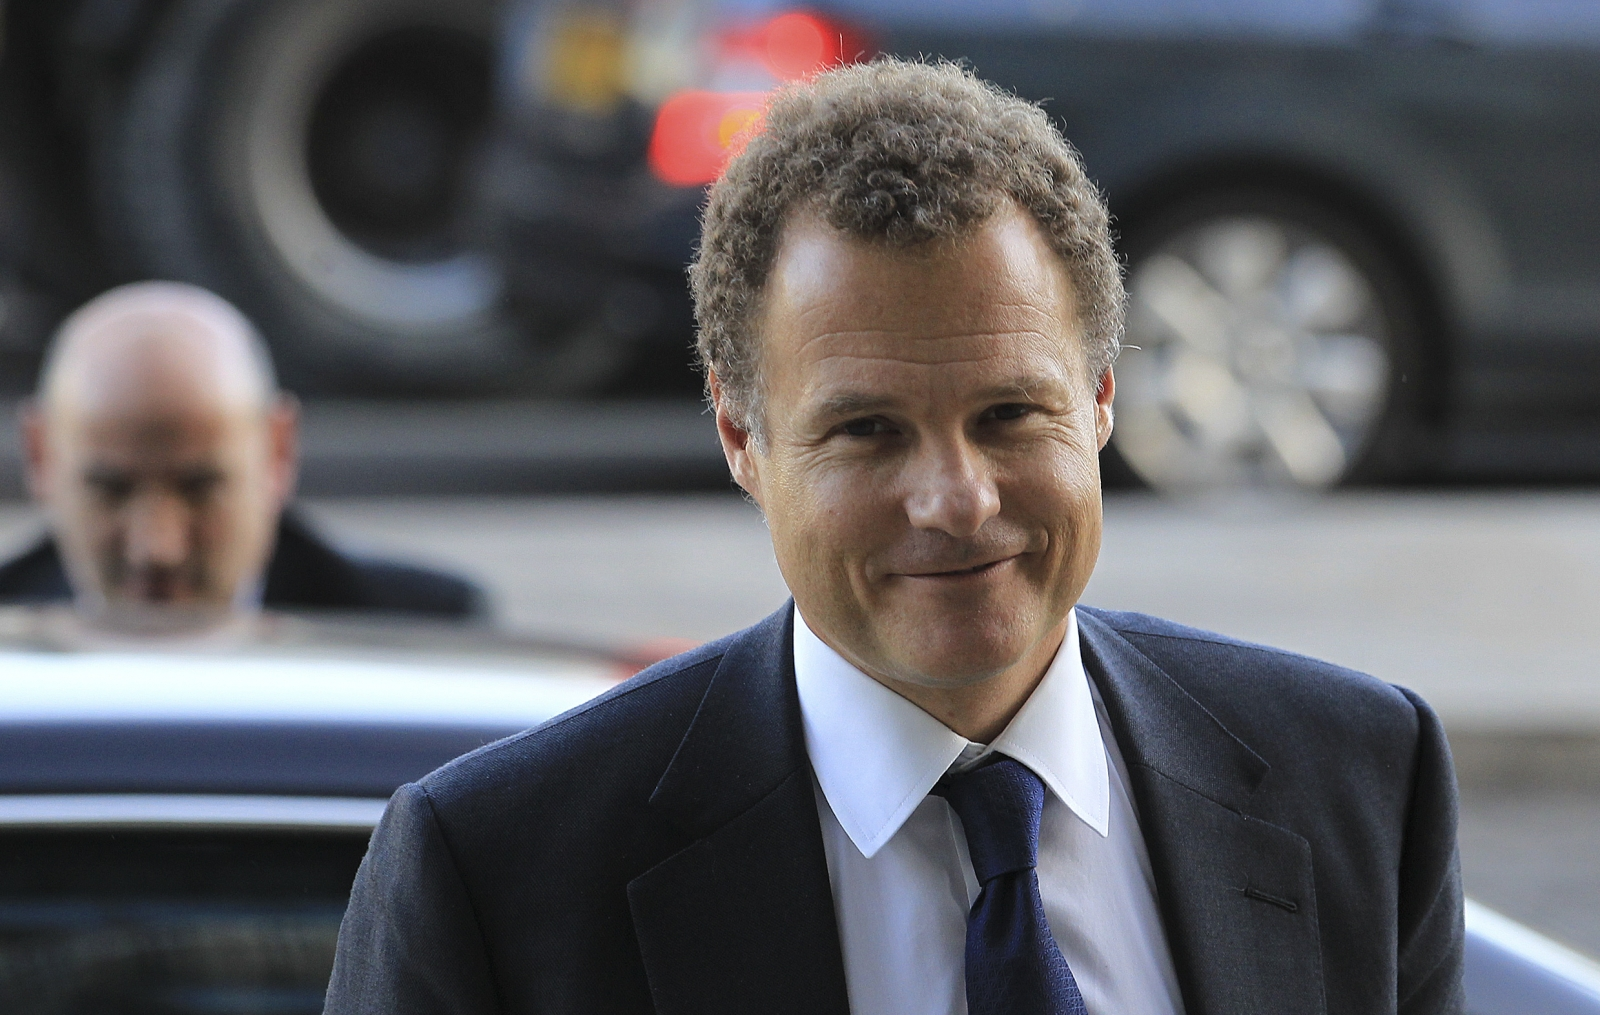 Lord Rothermere